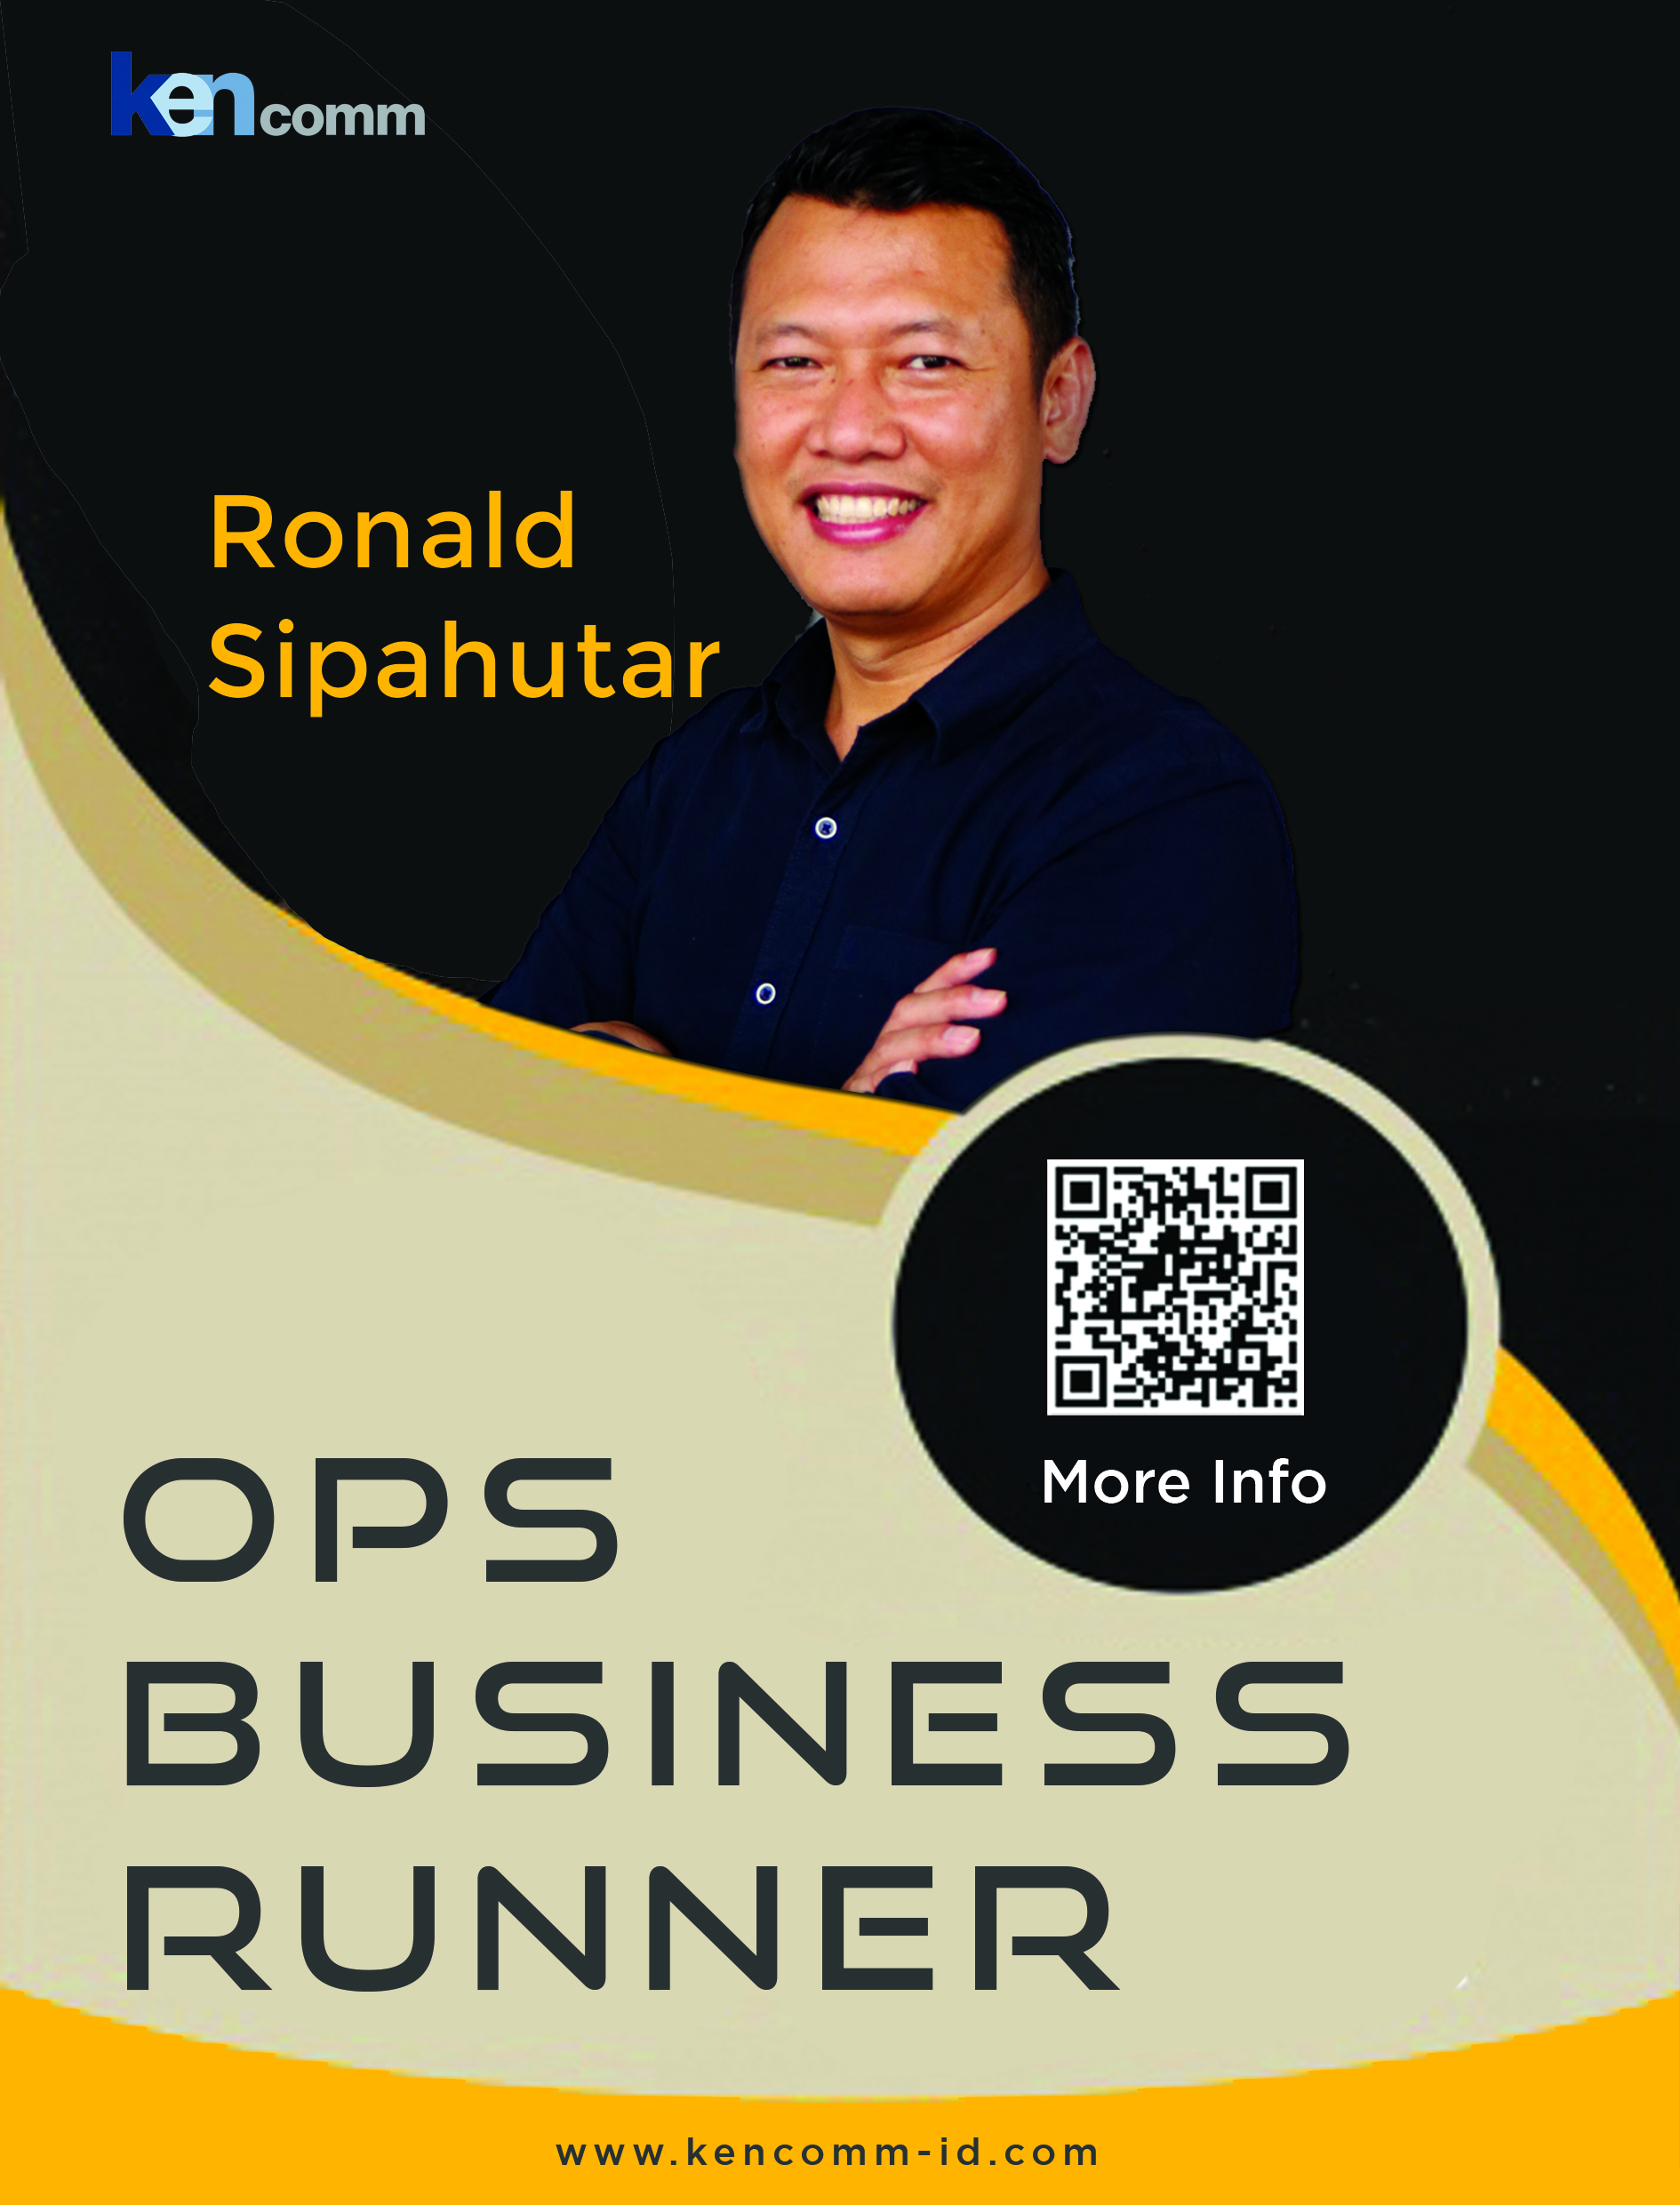 ops business runner-ko Ronald